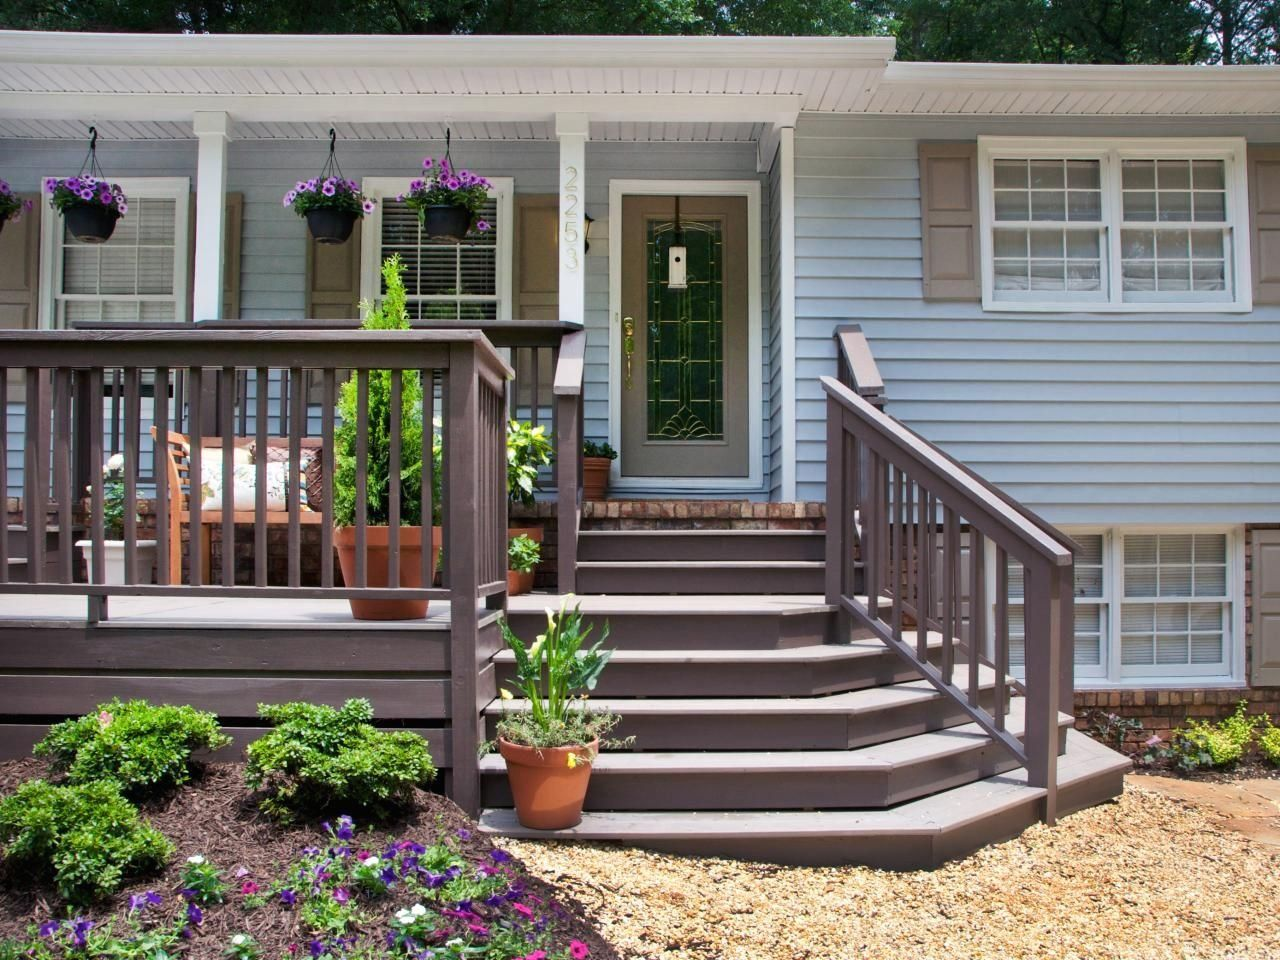 Before a home makeover, this home had a tiny front porch